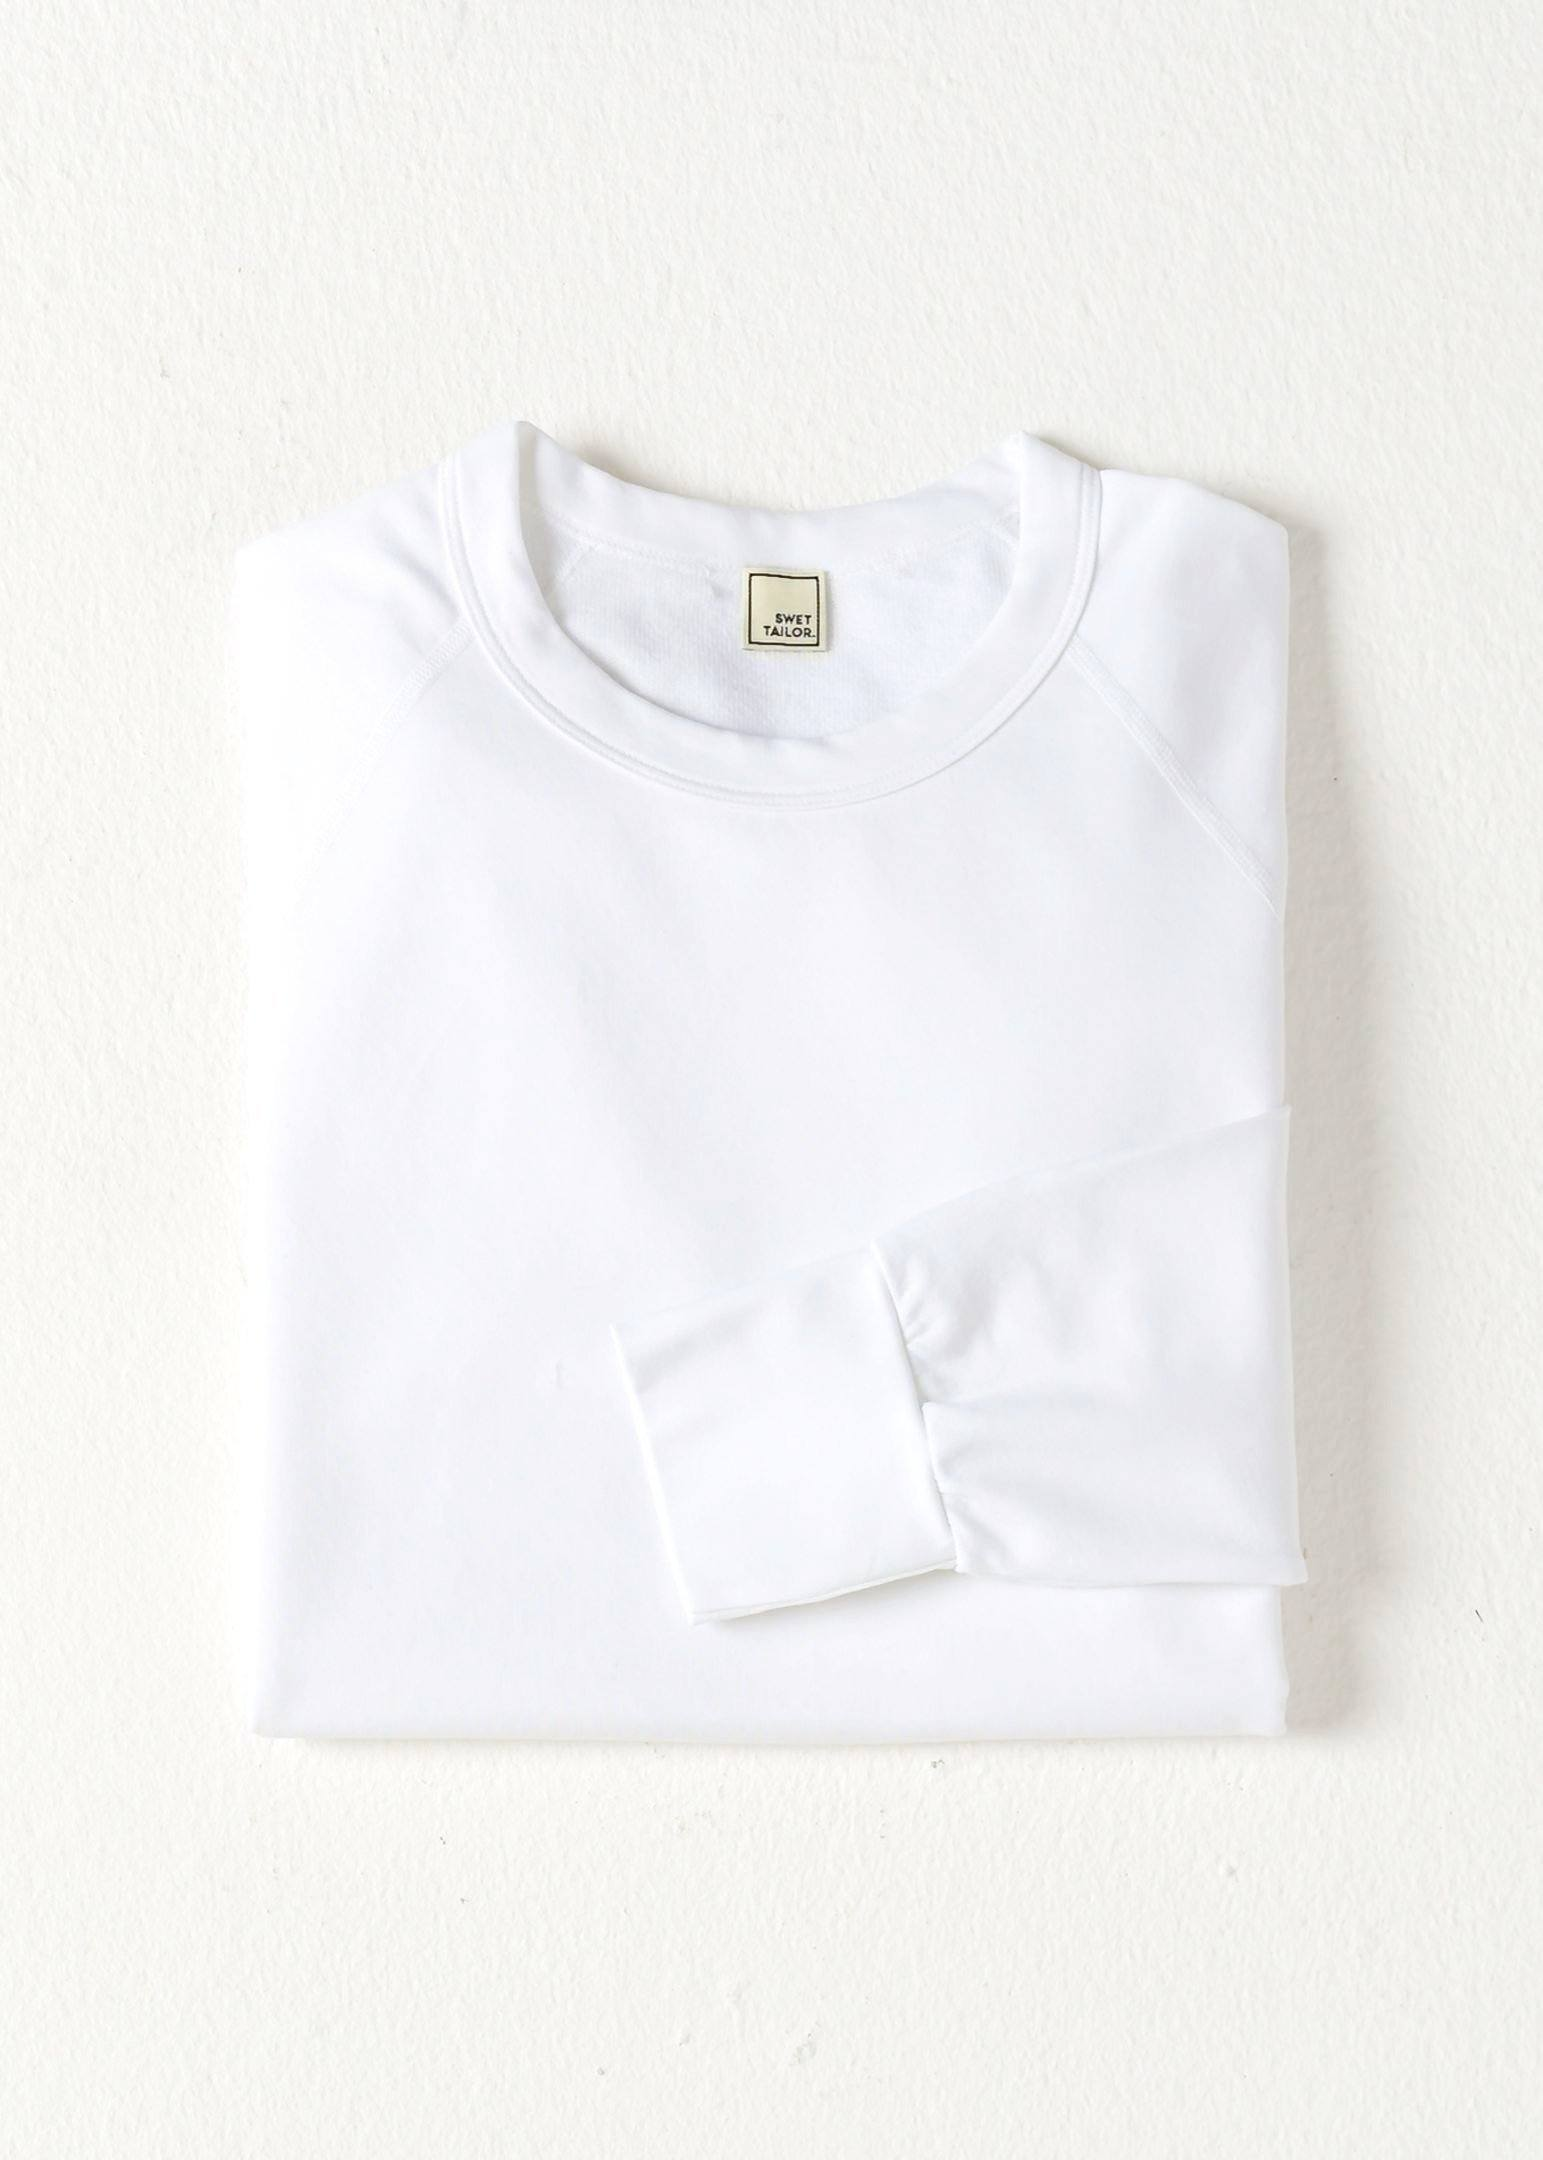 SWET-Shirt | White